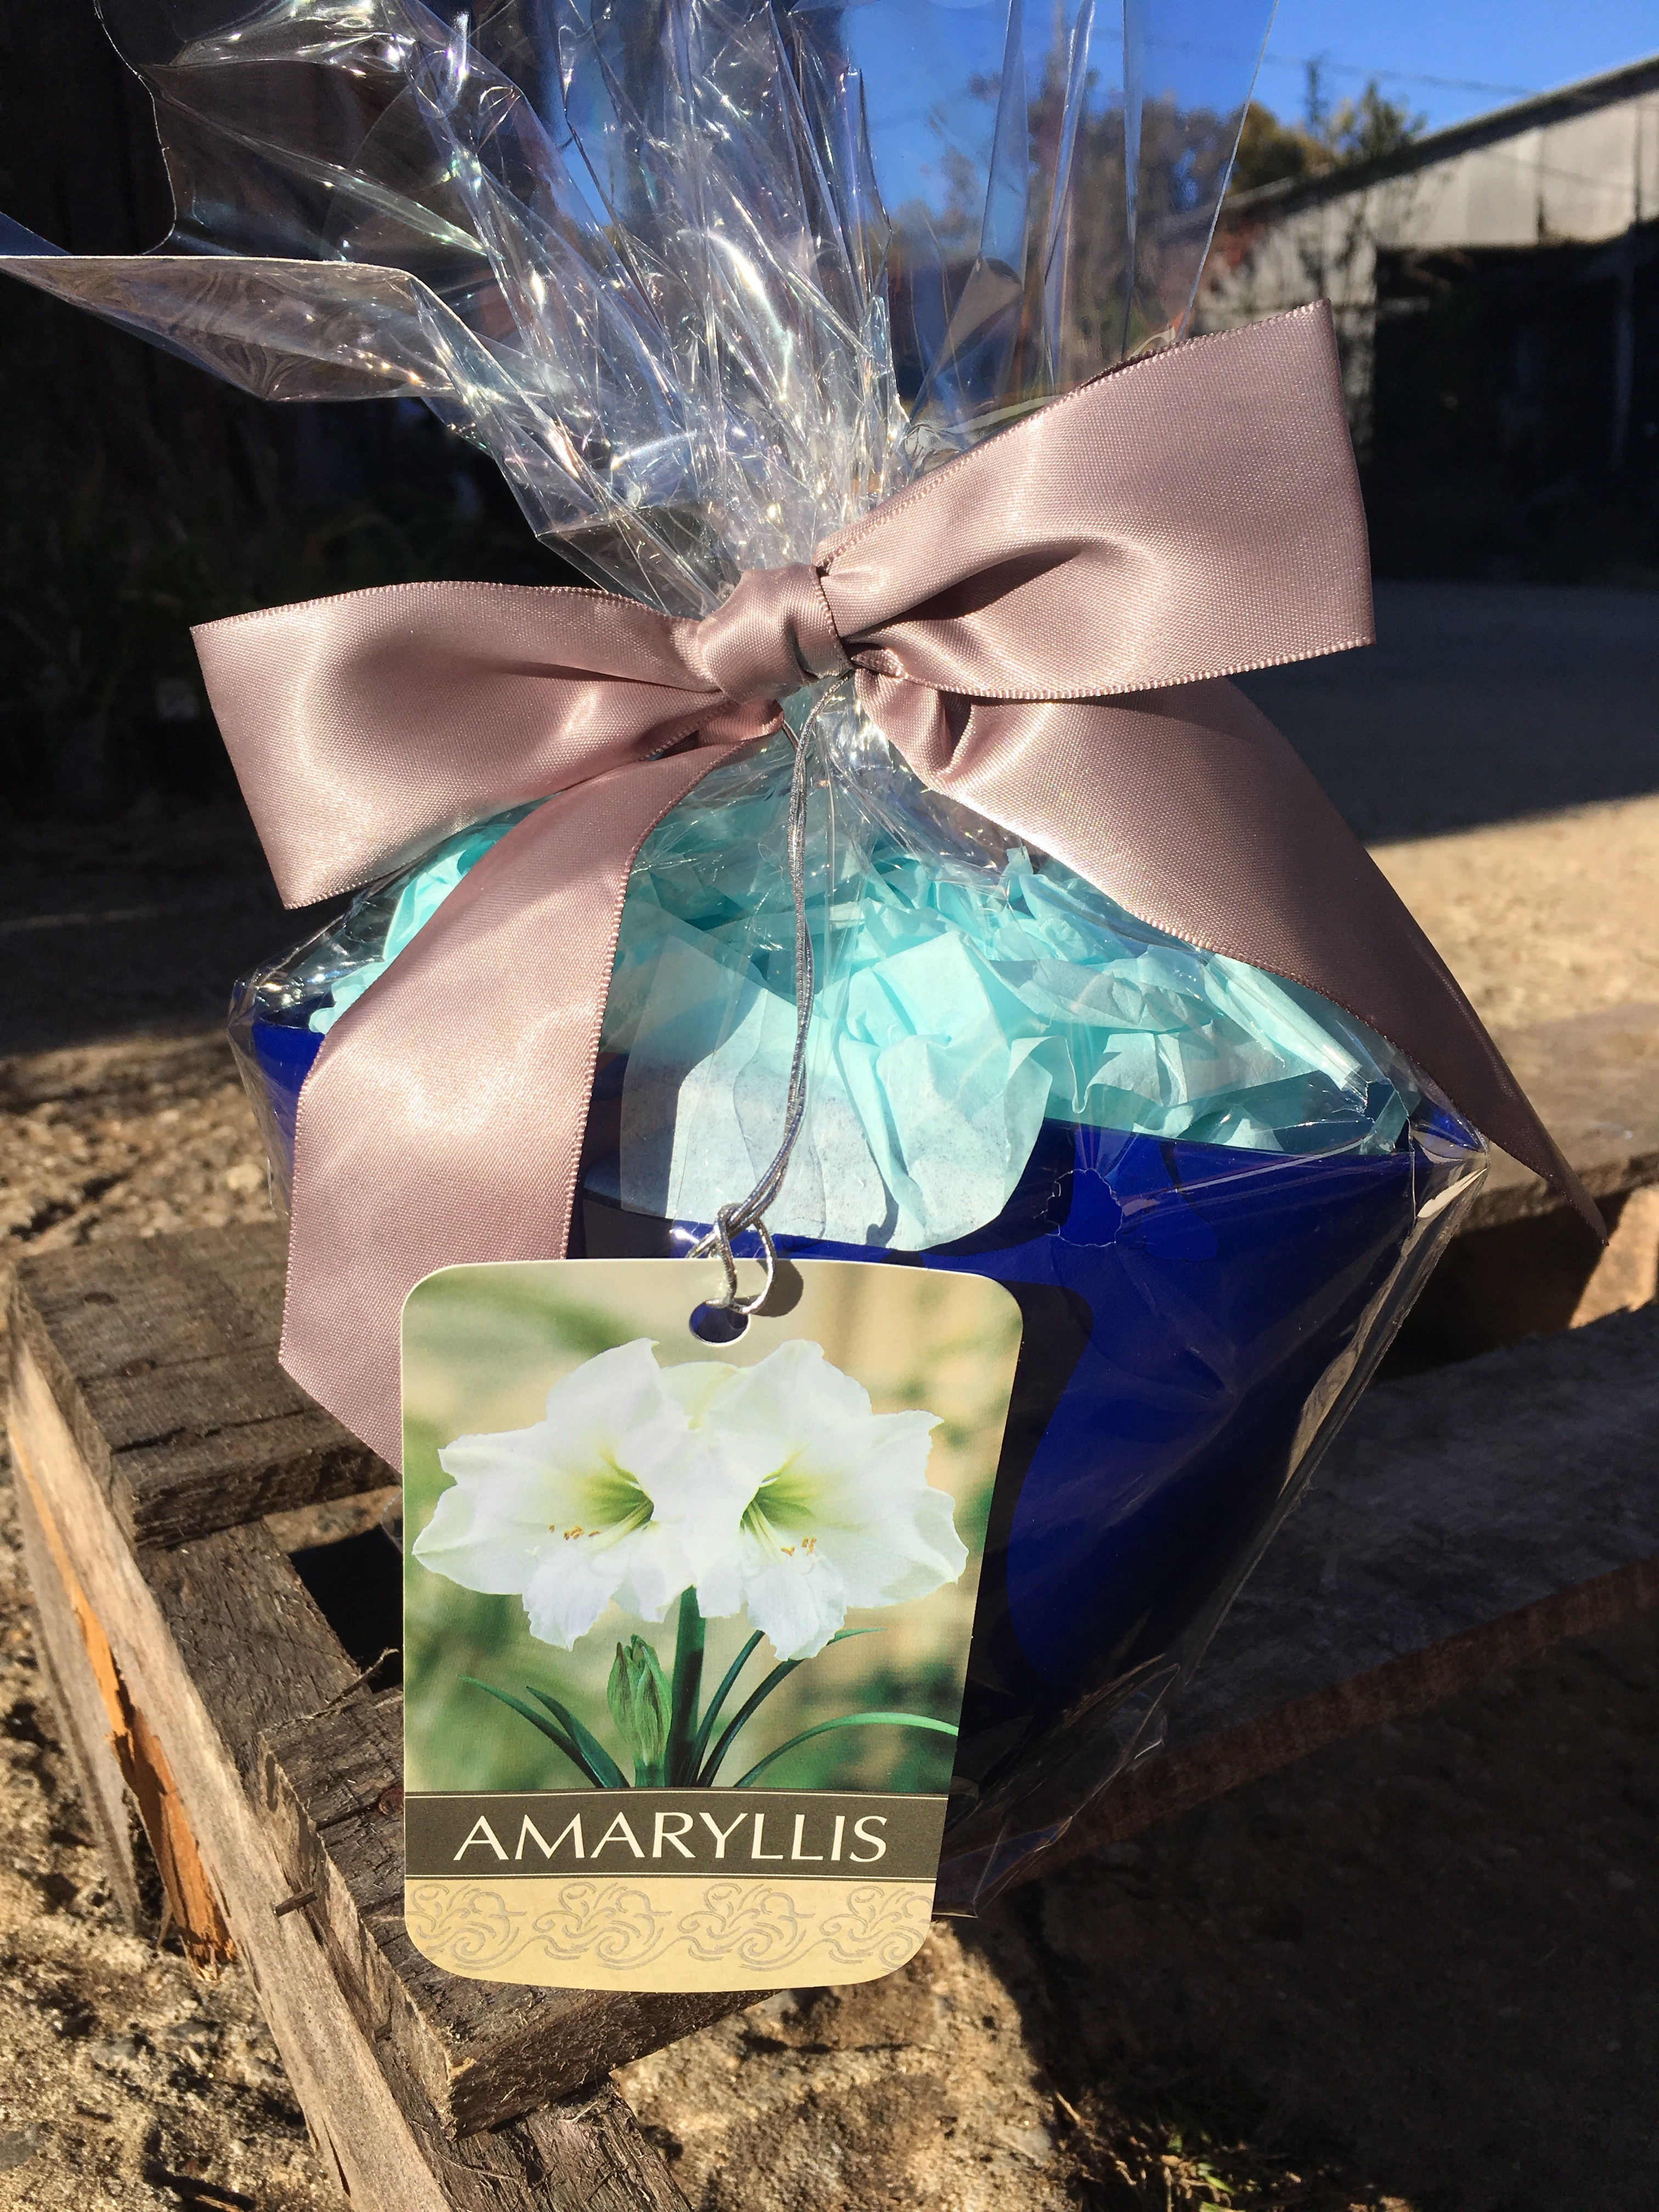 Amaryllis grow kit from our online nursery, an online plant nursery for amaryllis grow kits, citronella plants, tulip bulb mix, paperwhite bulb mix, fast growing trees and more!